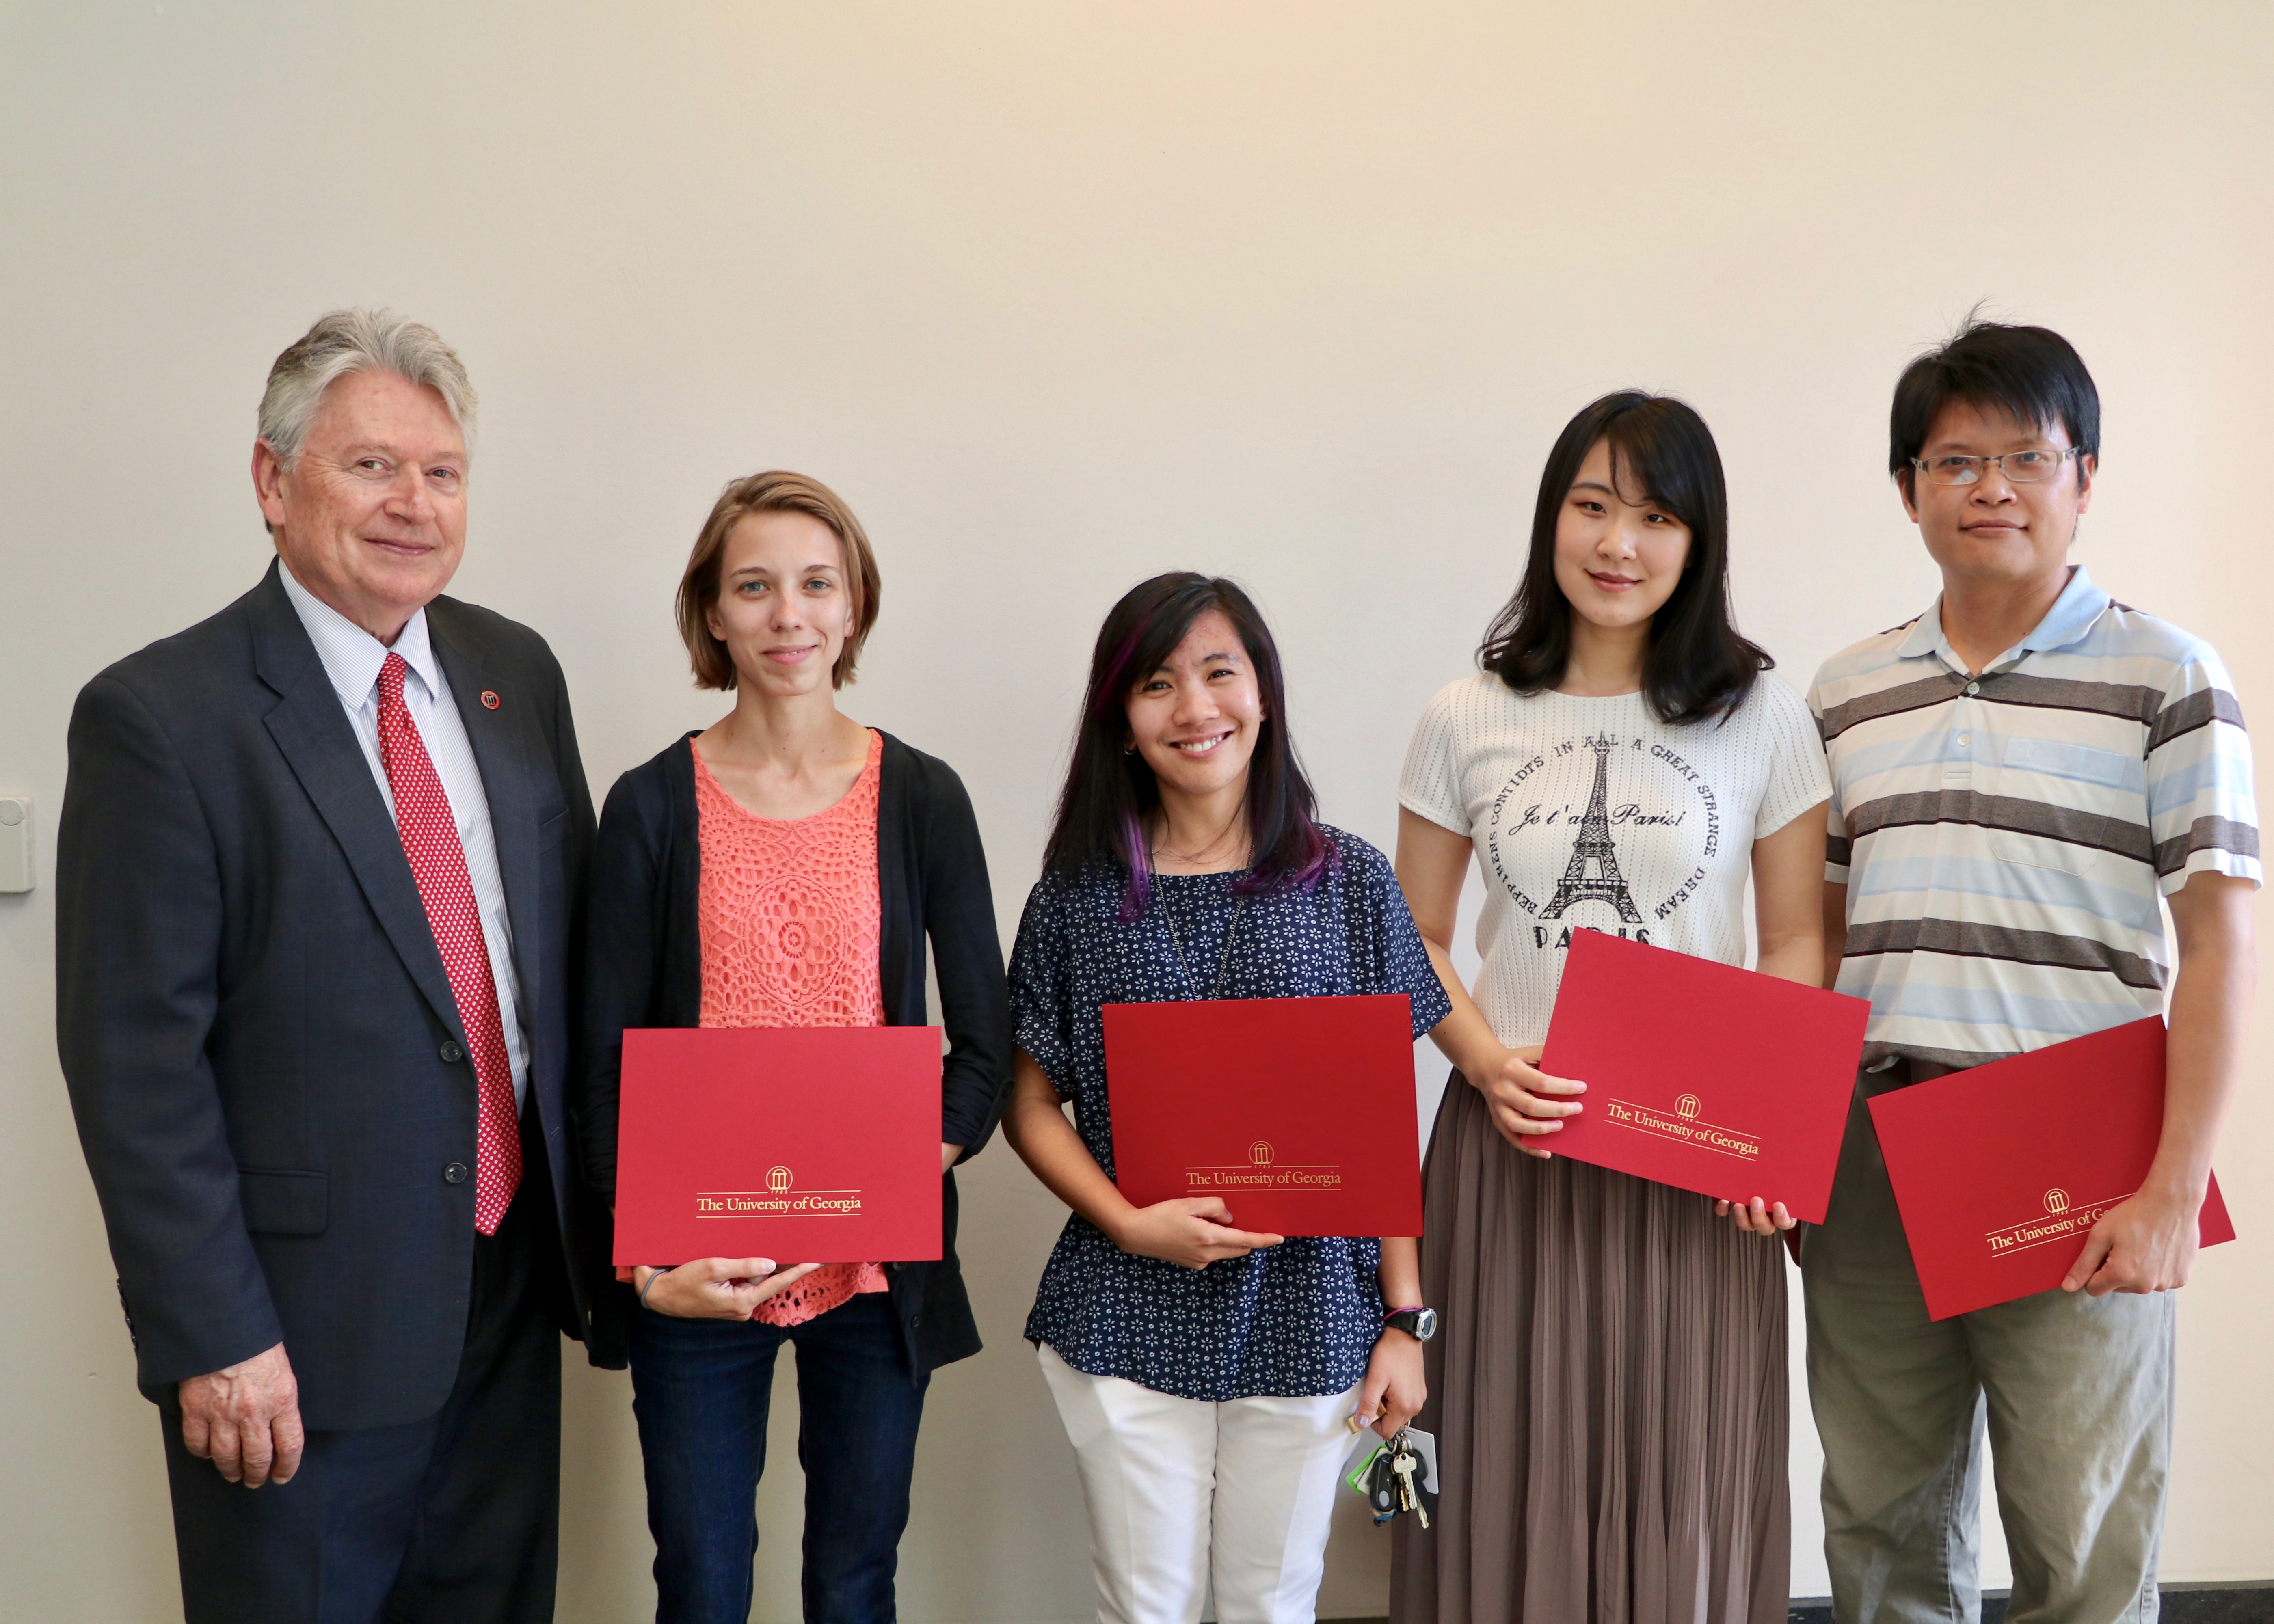 CAES Associate Dean for Academic Affairs Josef Broder congratulates CAES graduate students, from left, Ashley Duxbury, Leilani Sumabat, Shan Gao and Cheng-Fang Hong for winning CAES 2017 Outstanding Teaching Awards. The awards recognize graduate students who have achieved excellence in the classroom.